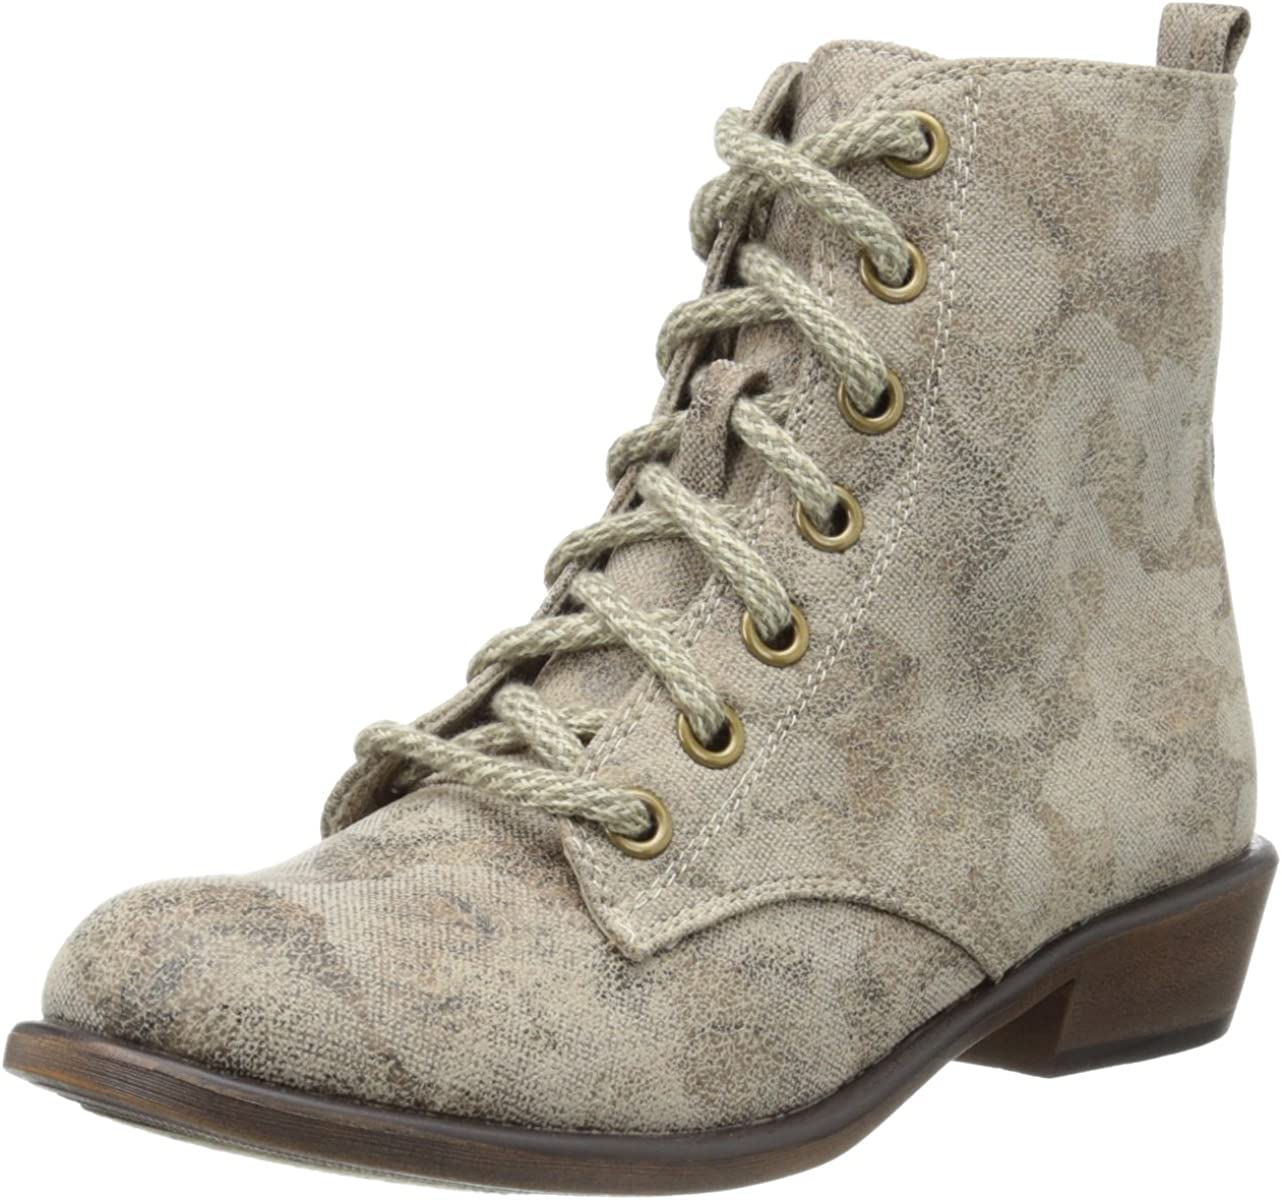 Dirty Laundry by Chinese Laundry Women's Preview Ankle Boot